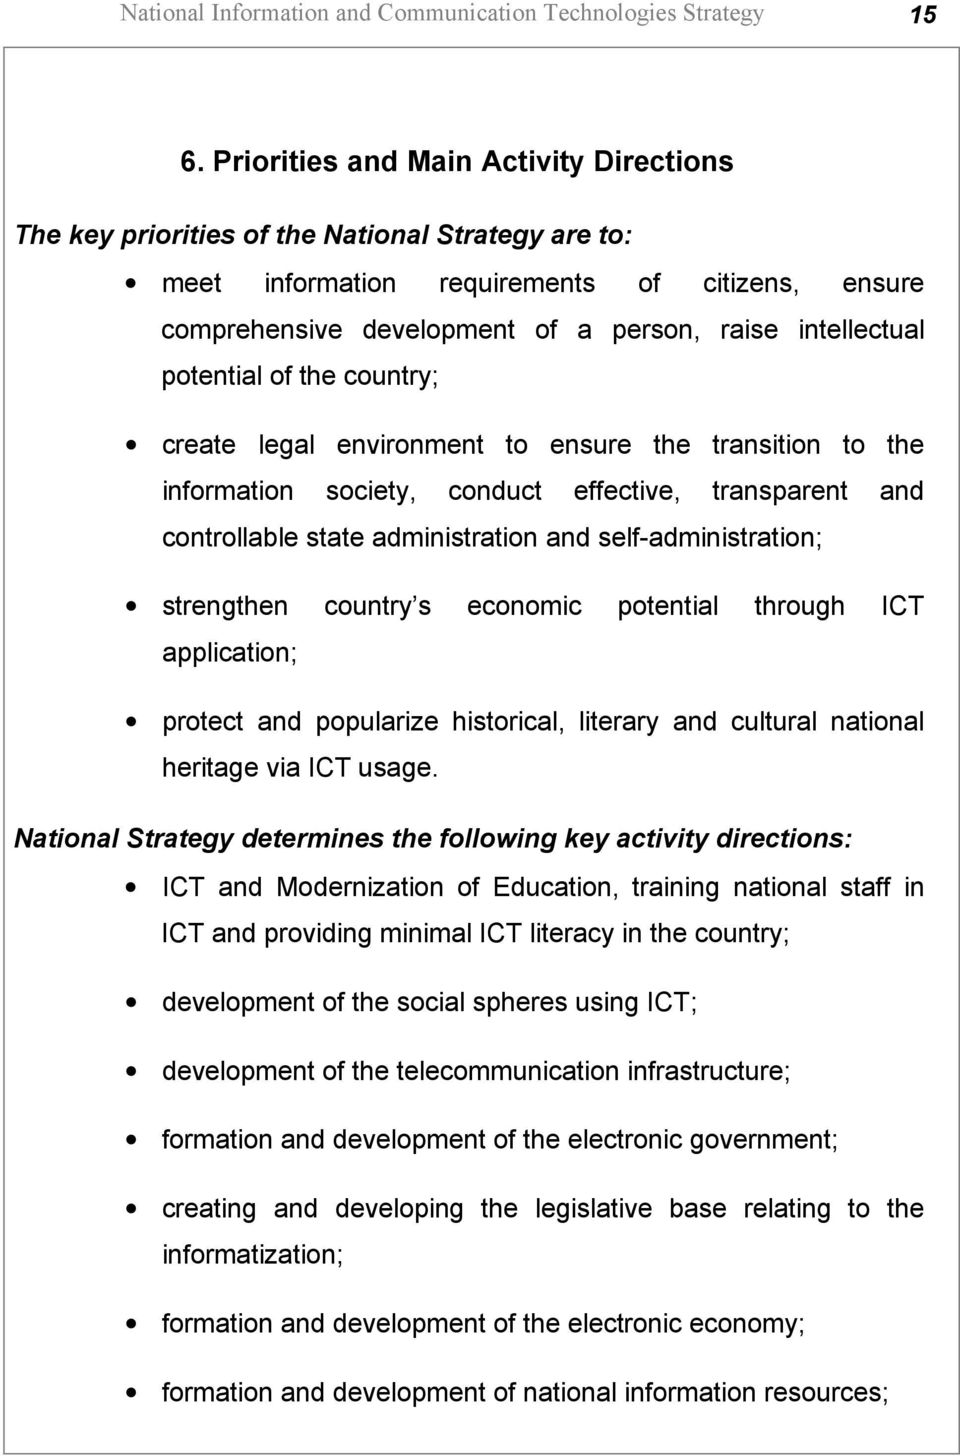 potential of the country; create legal environment to ensure the transition to the information society, conduct effective, transparent and controllable state administration and self-administration;